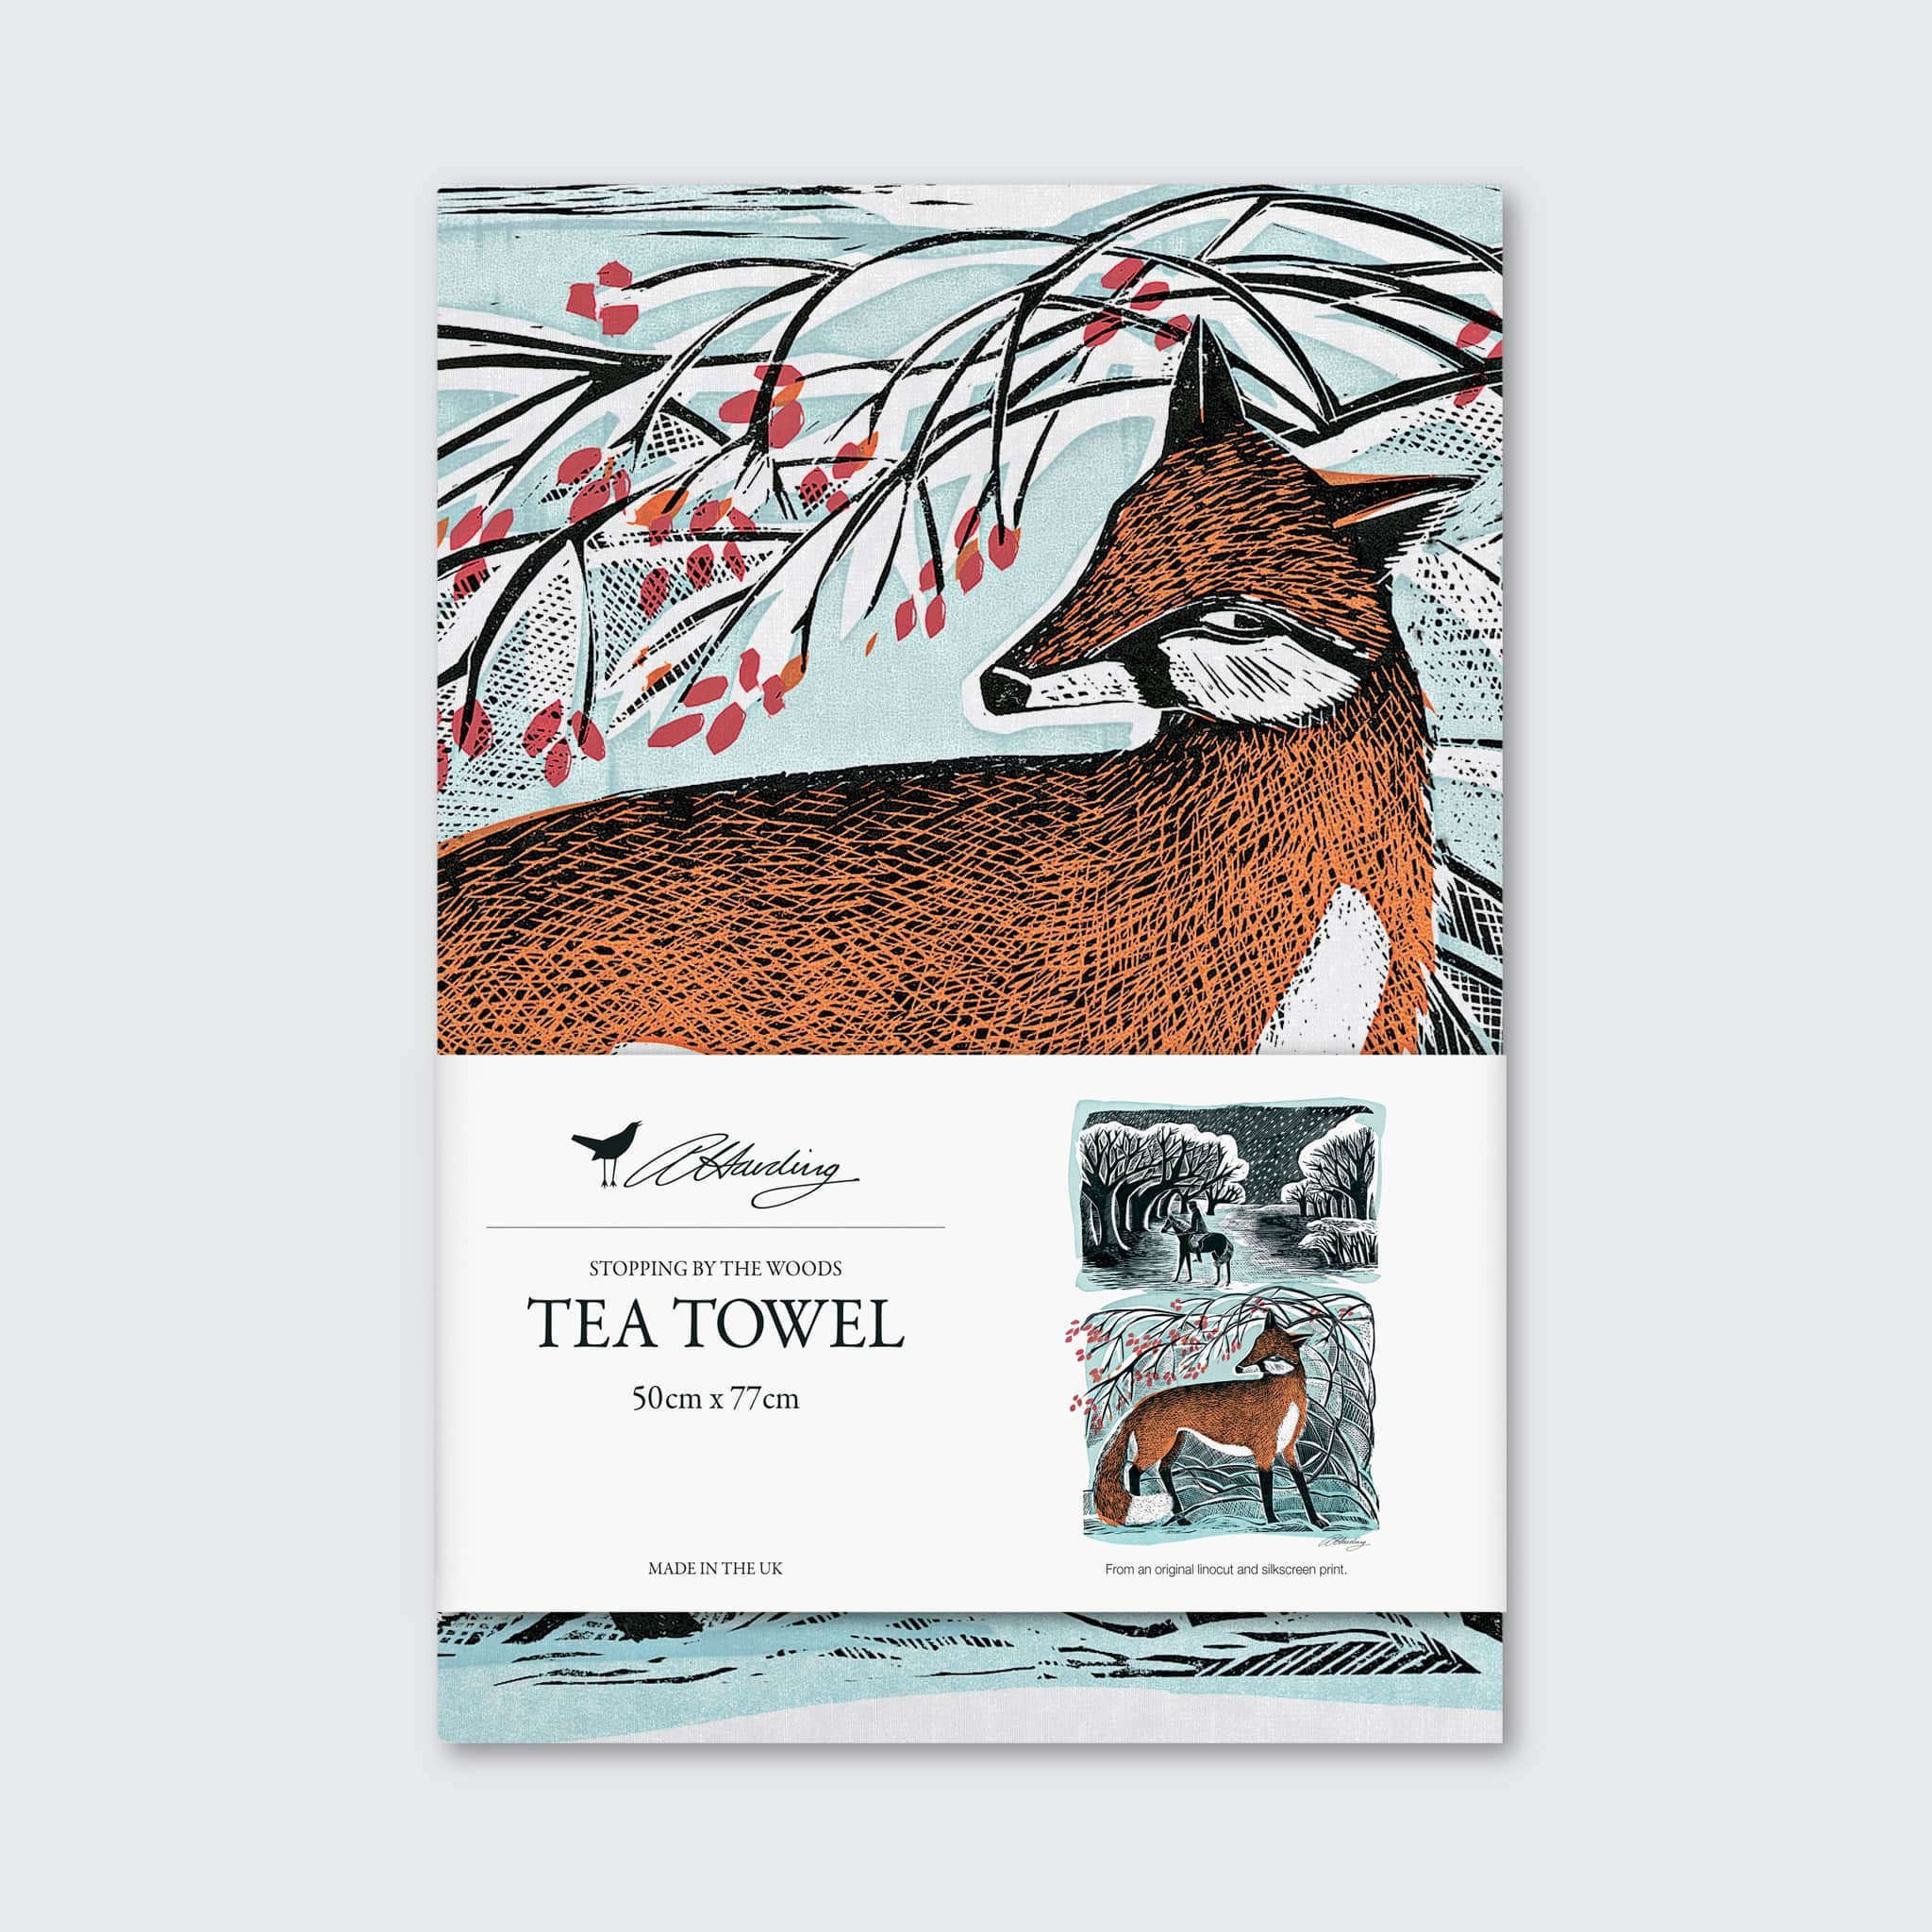 Stopping By The Woods Tea Towel by Angela Harding